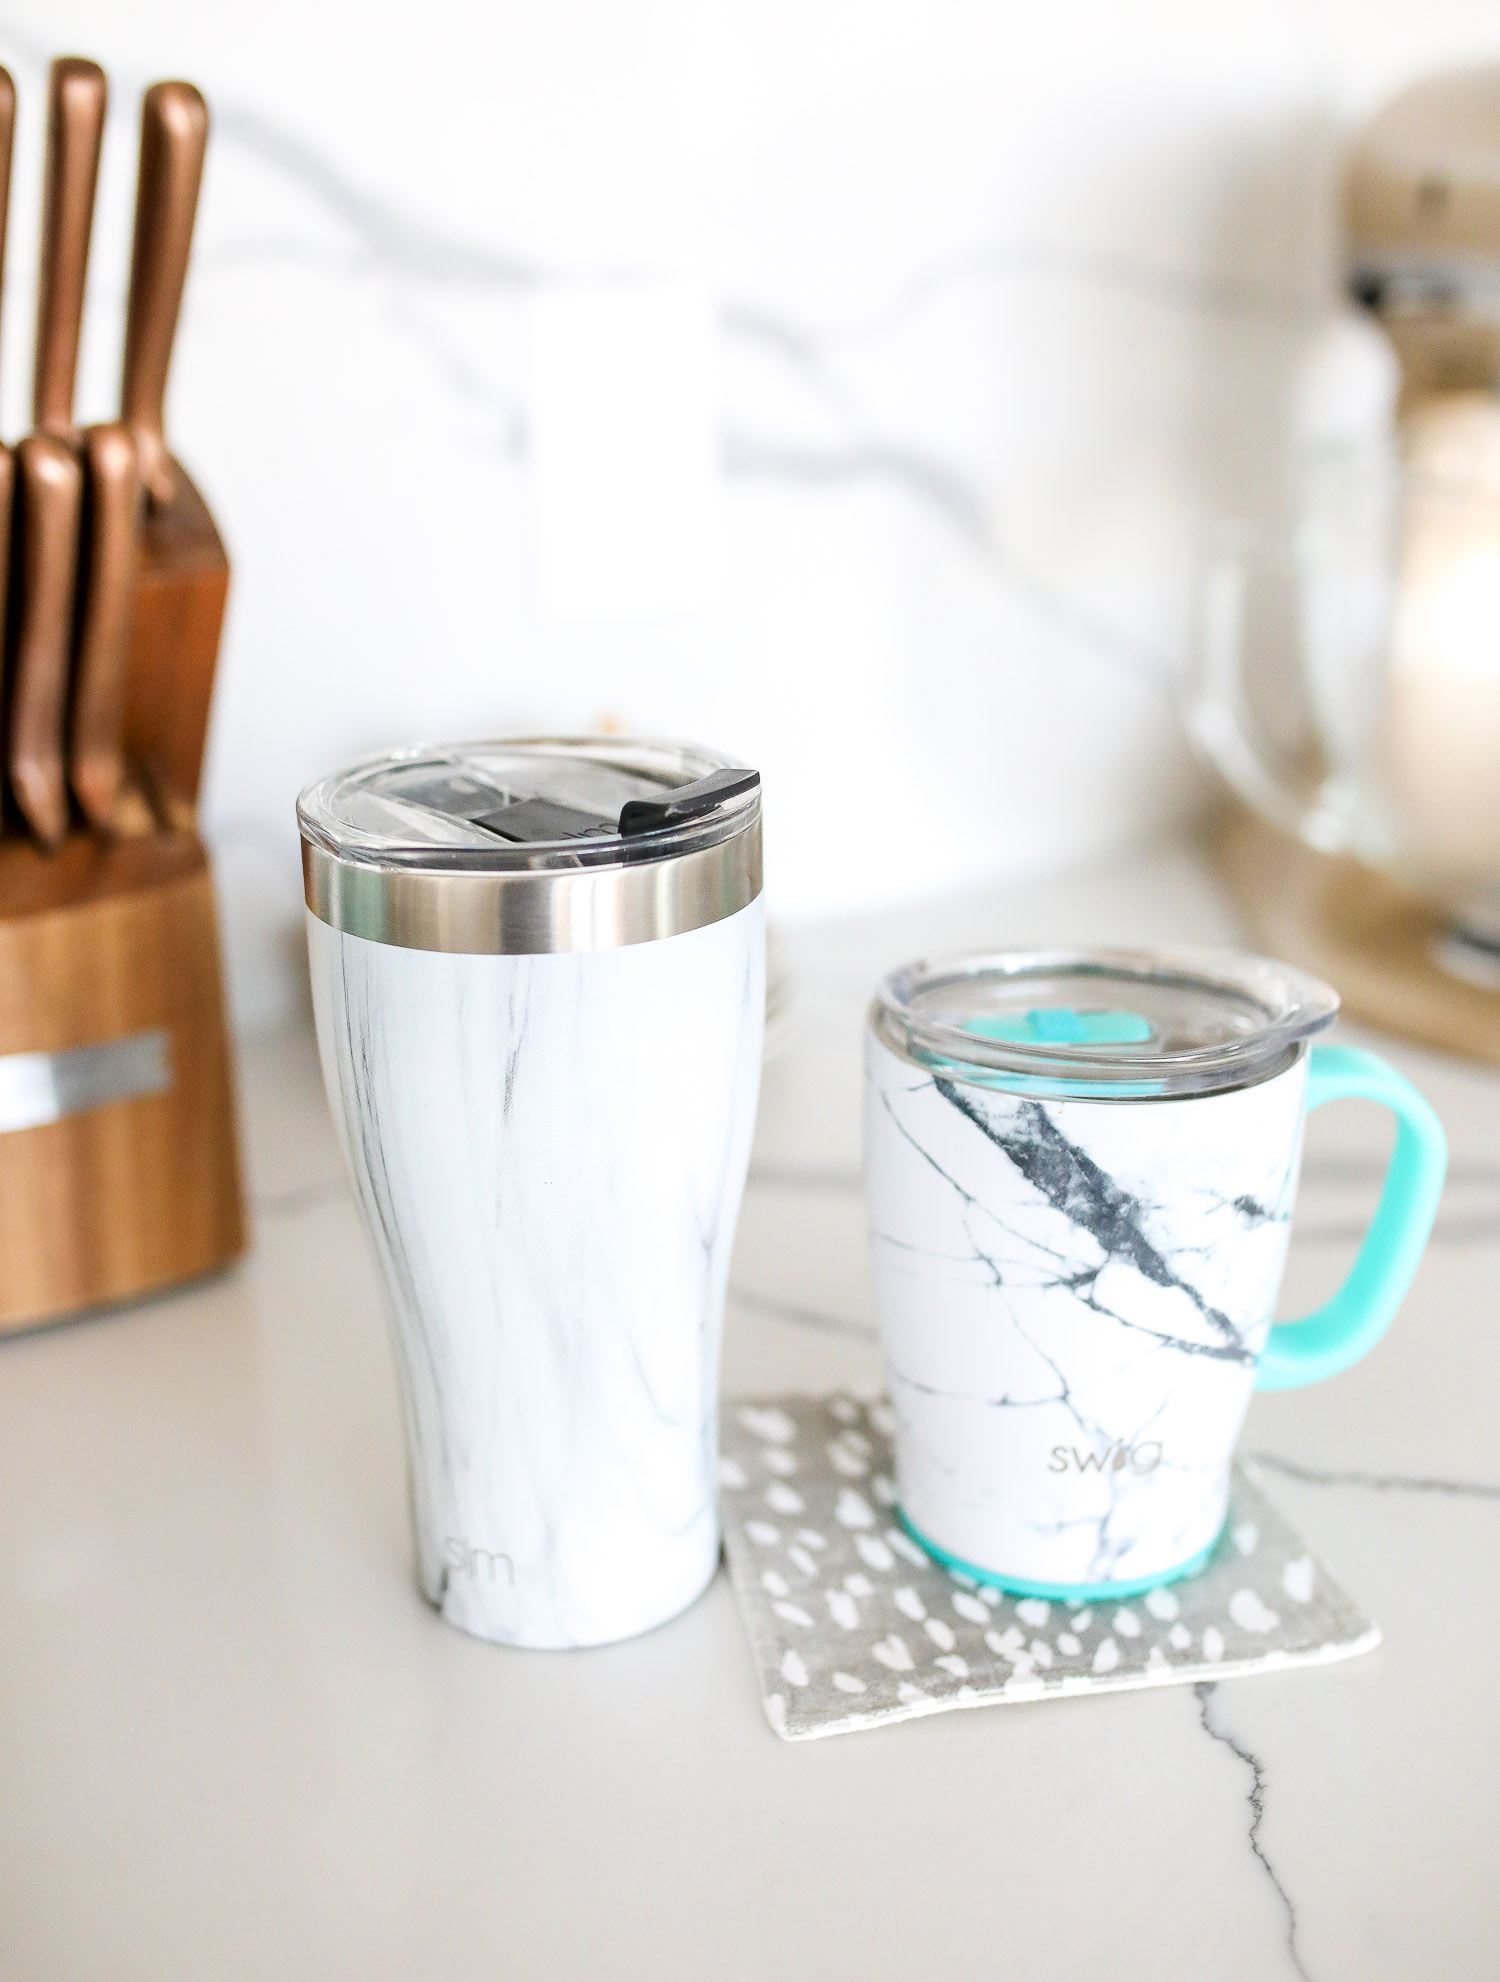 swig marble cup insulated, top amazon must haves, amazon best buys 2020, emily gemma, amazon prime must haves blog post,_-4 | Amazon Prime Favorites by popular US life and style blog, The Sweetest Thing: image of Amazon Prime Swig travel thermos and mug.